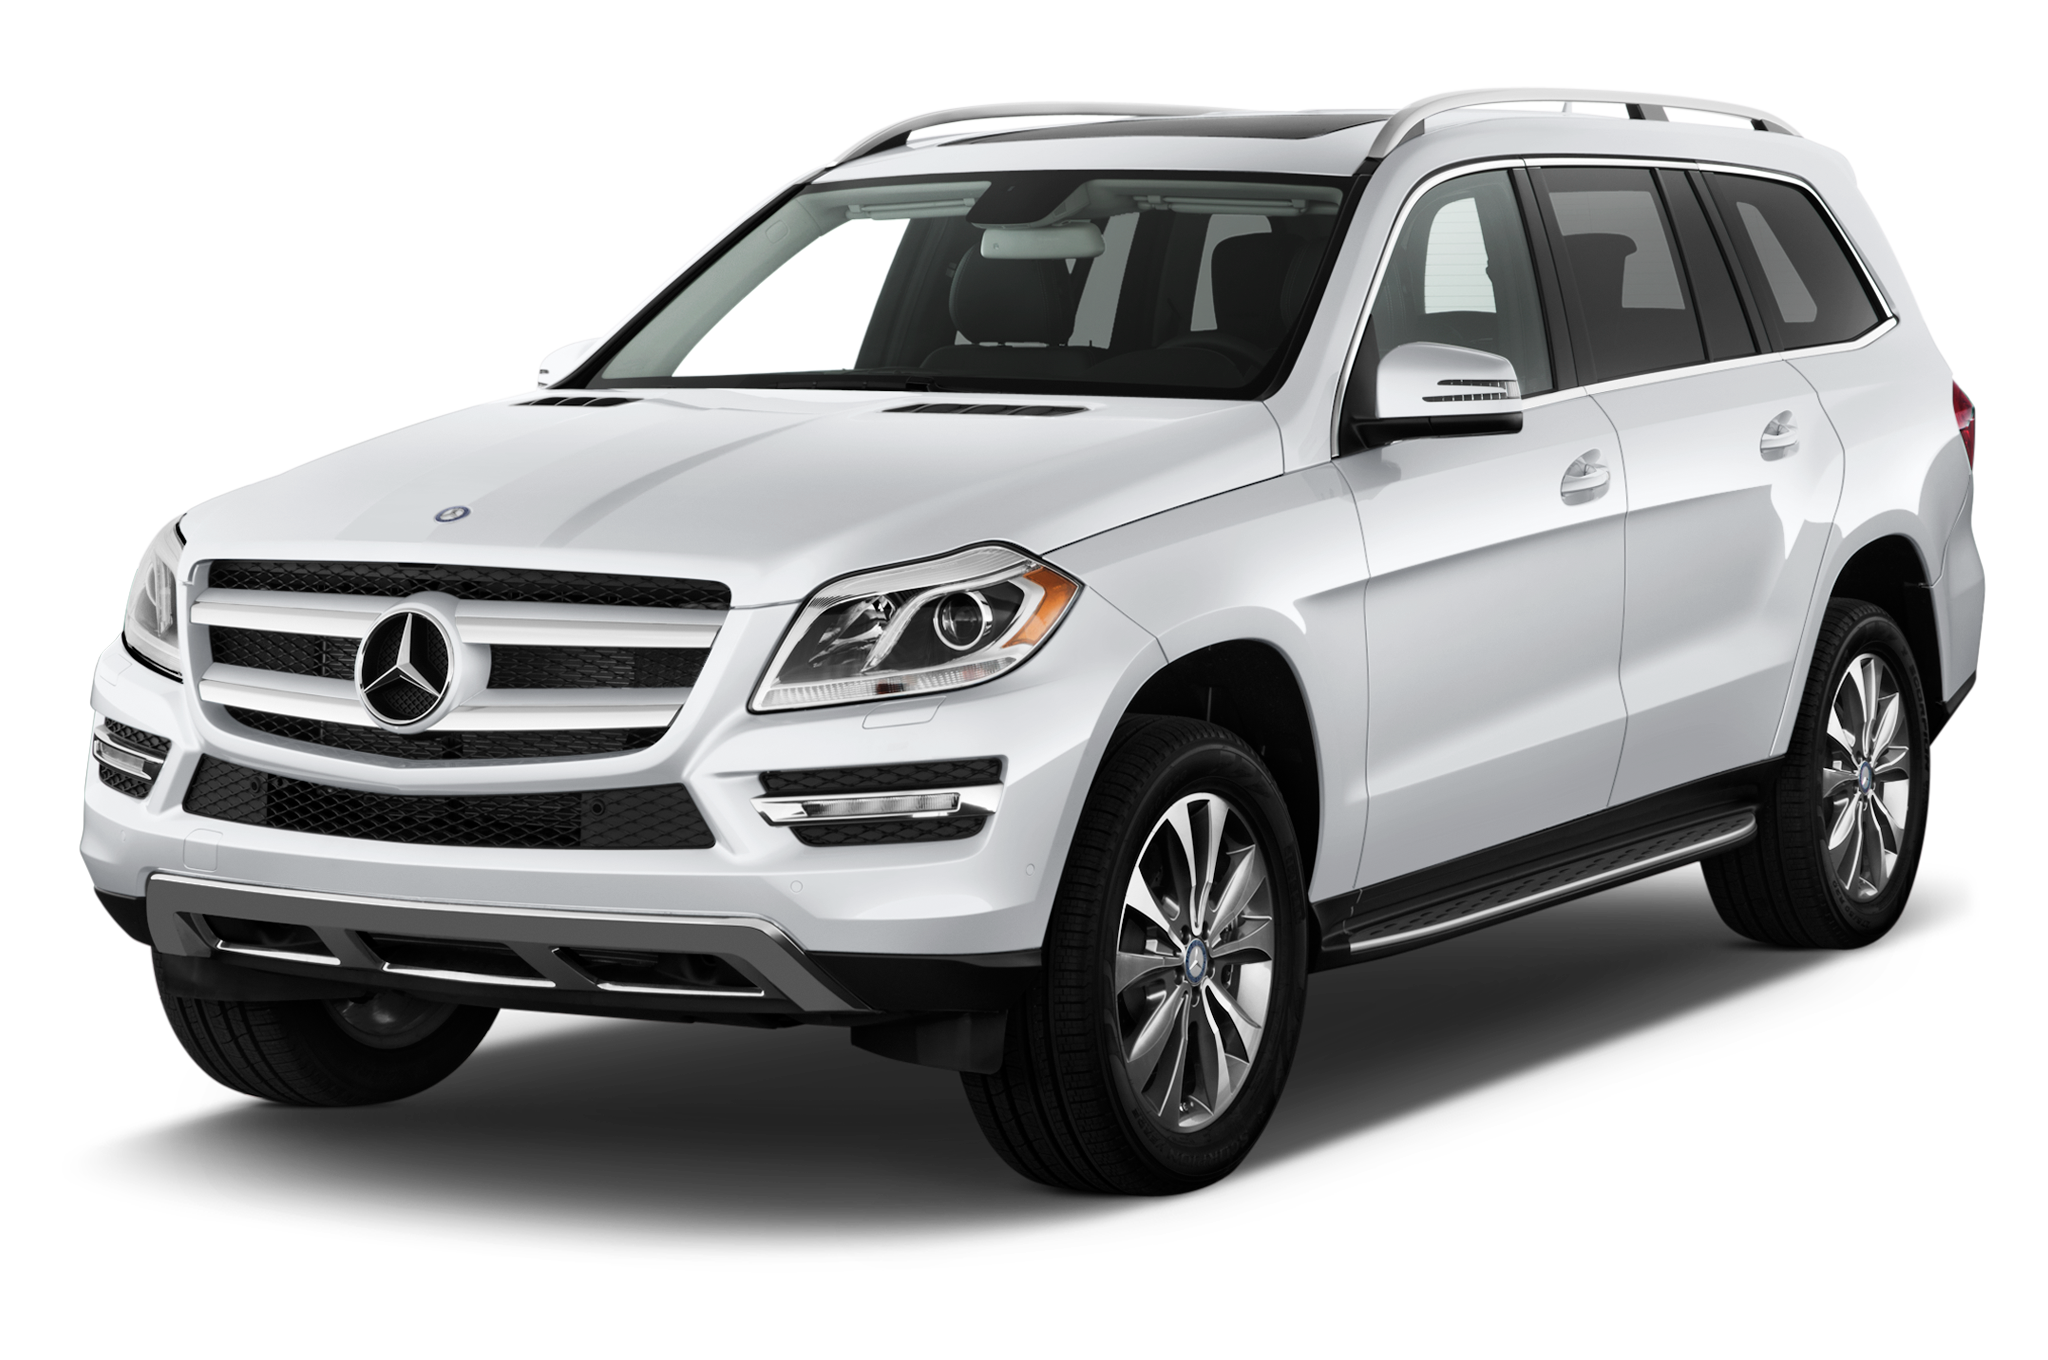 2013-mercedes-benz-gl-class-350-suv-angular-front Interesting Info About 2013 Mercedes Gl450 for Sale